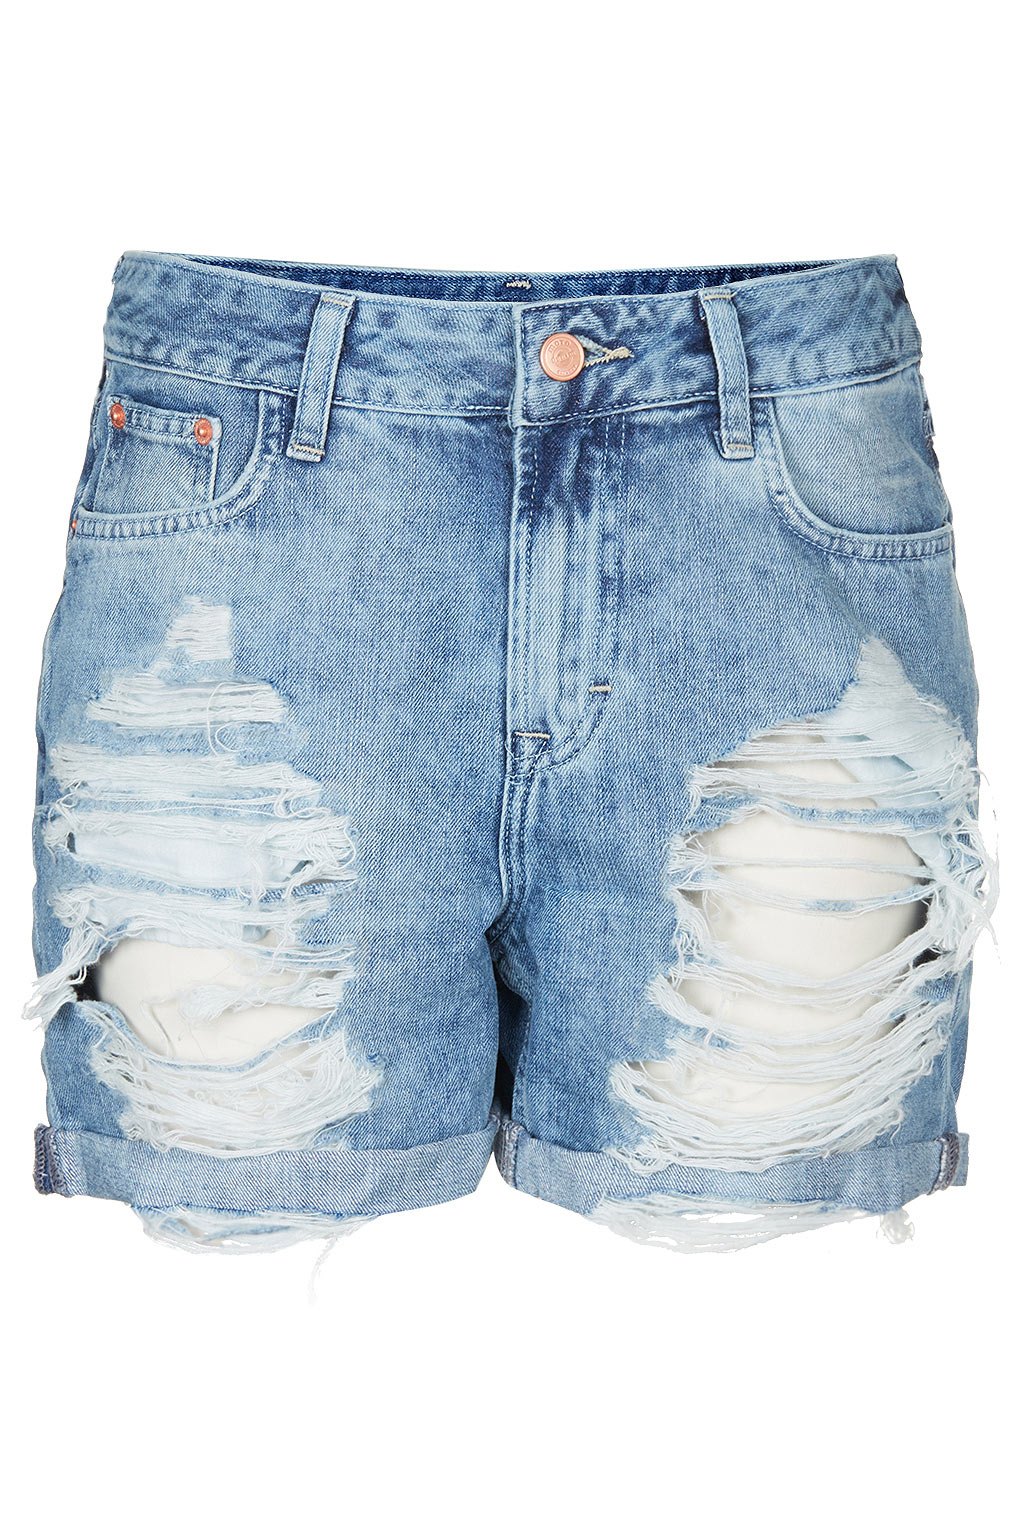 Topshop Ripped Denim Boy Shorts in Blue | Lyst